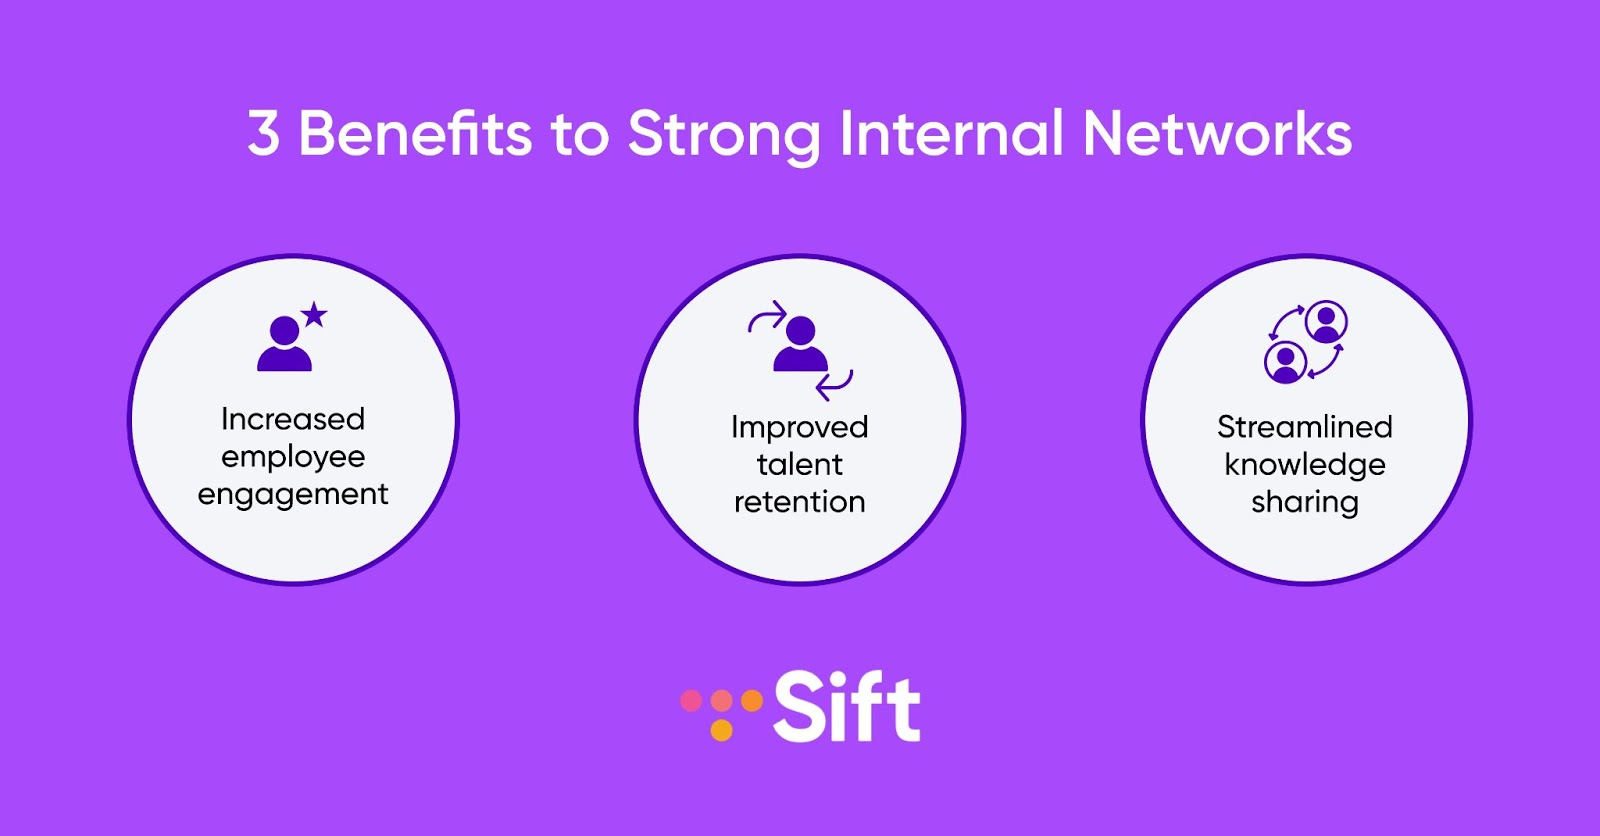 The top 3 benefits of strong internal networks - employee engagement, talent retention, and knowledge sharing